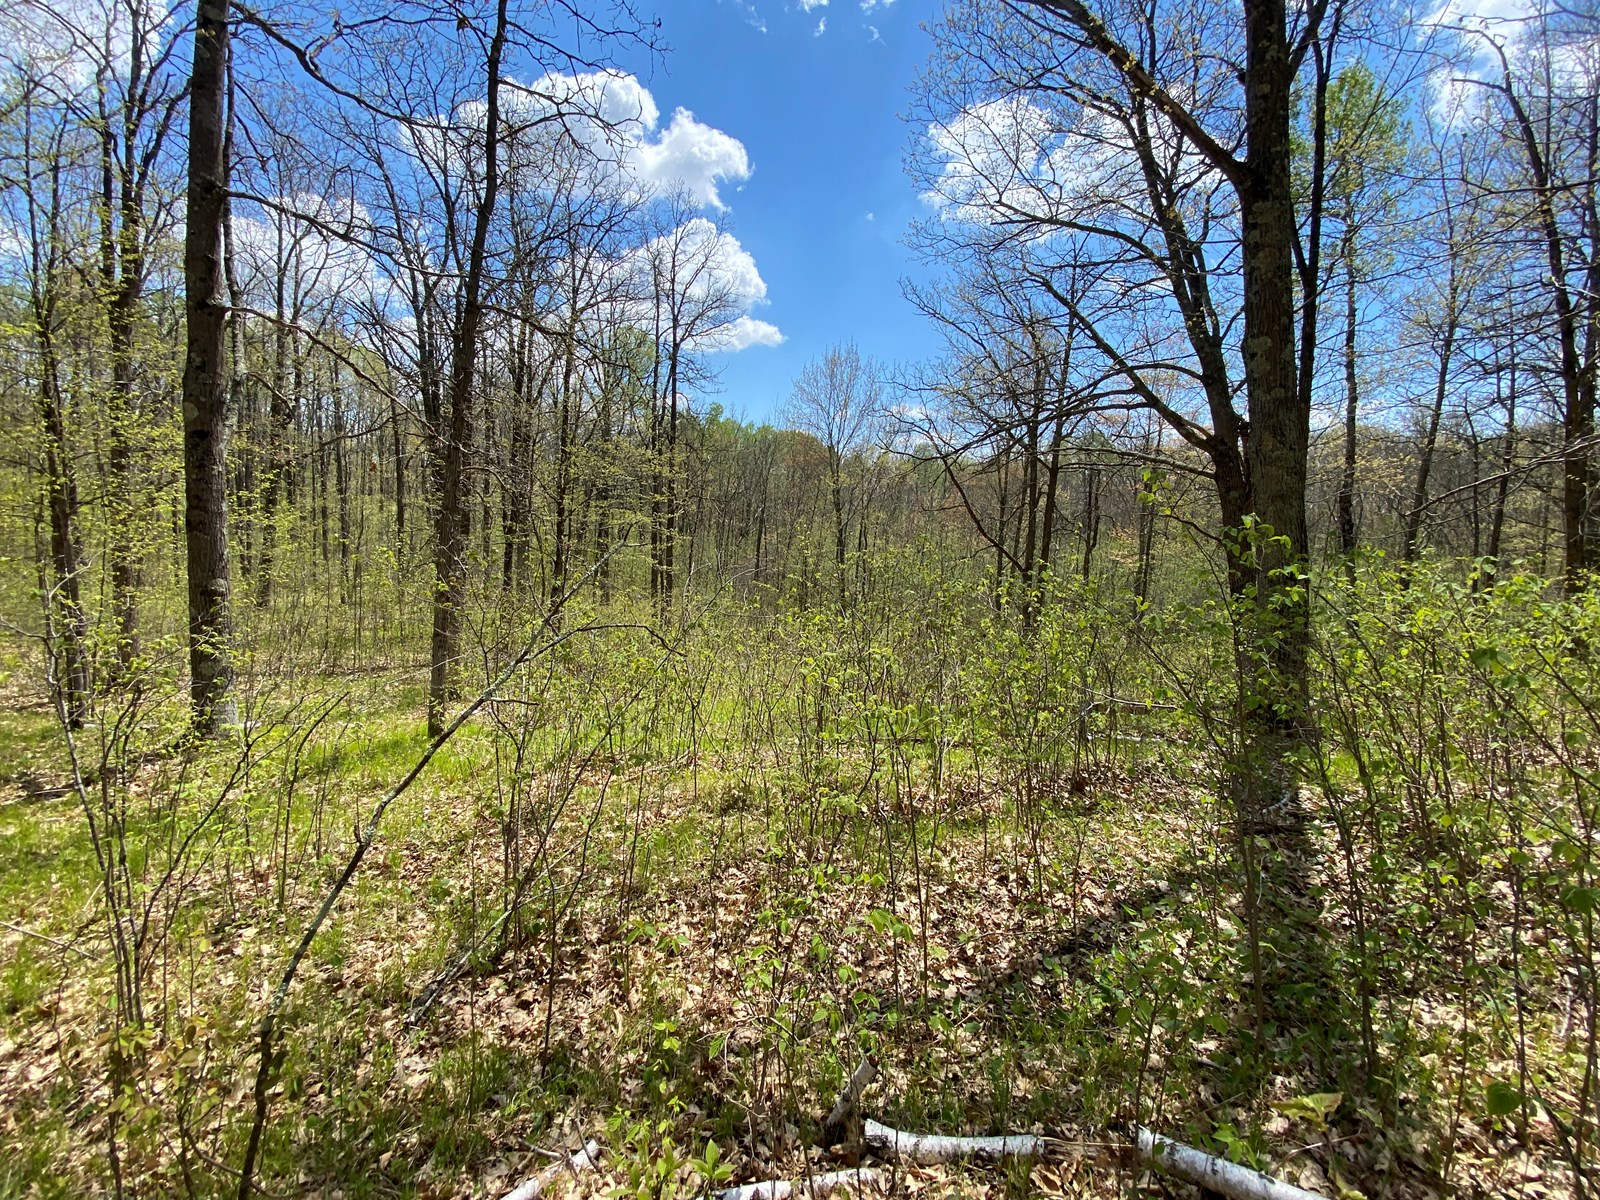 40 Acres Of Hunting Land For Sale Near Sandstone MN